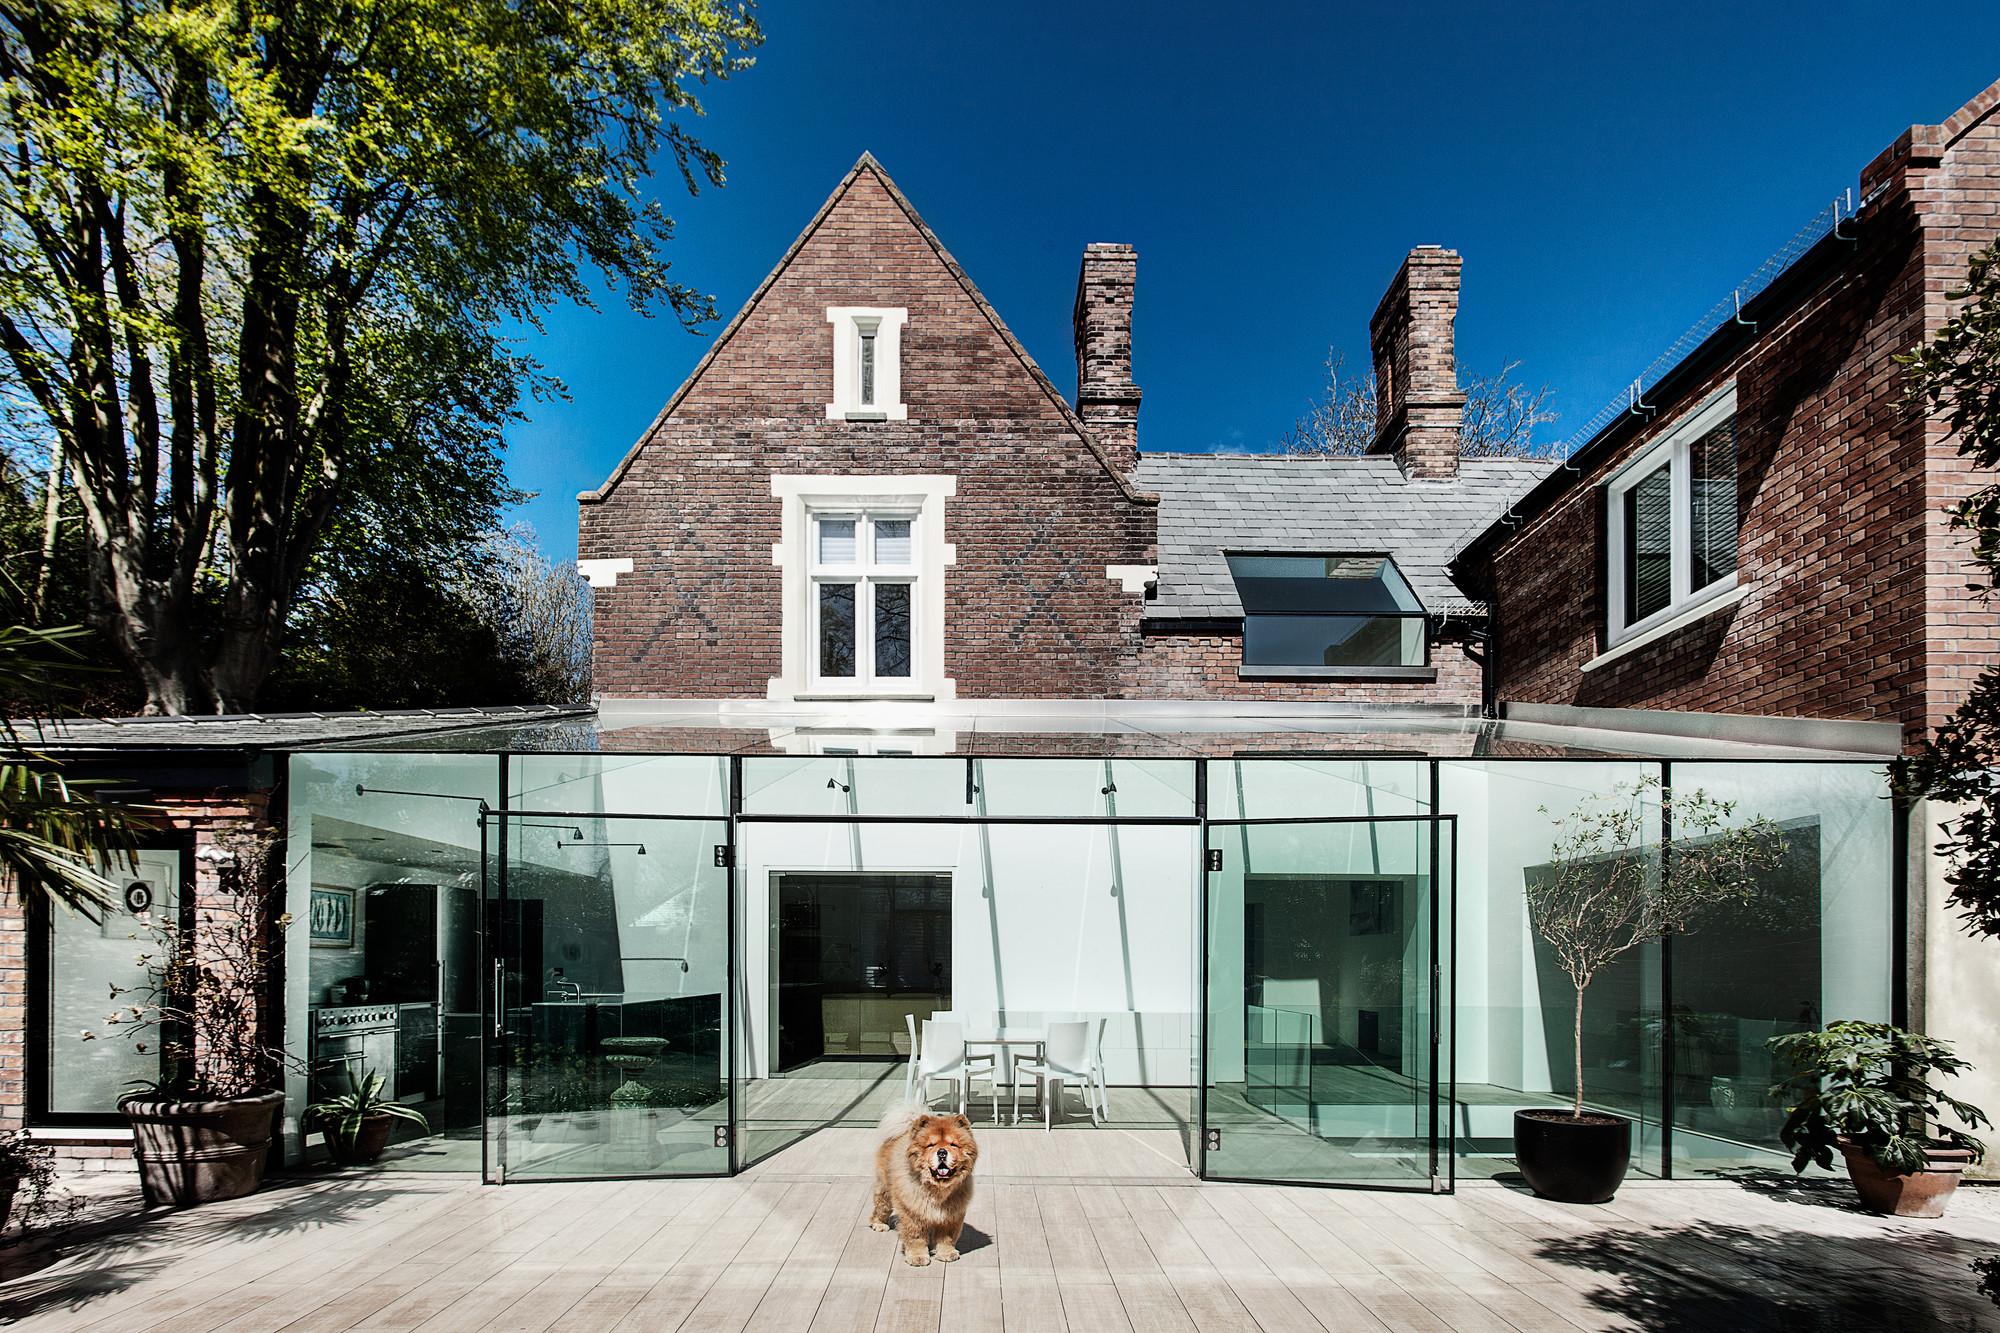 Glass House Designs the glass house / ar design studio | archdaily